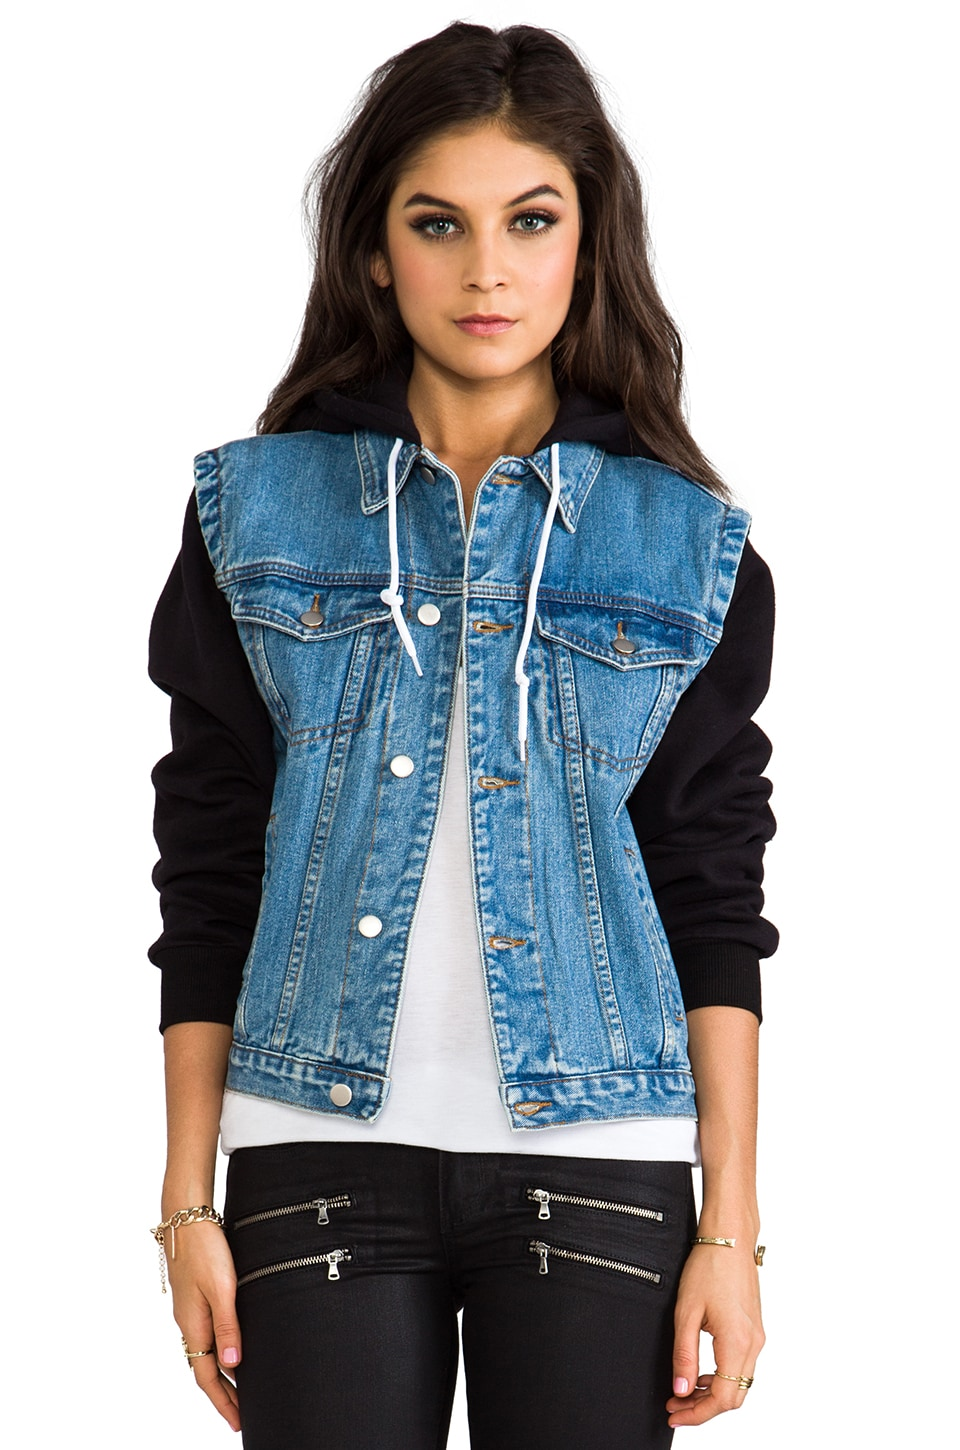 UNIF No You Jacket Jacket in Blue